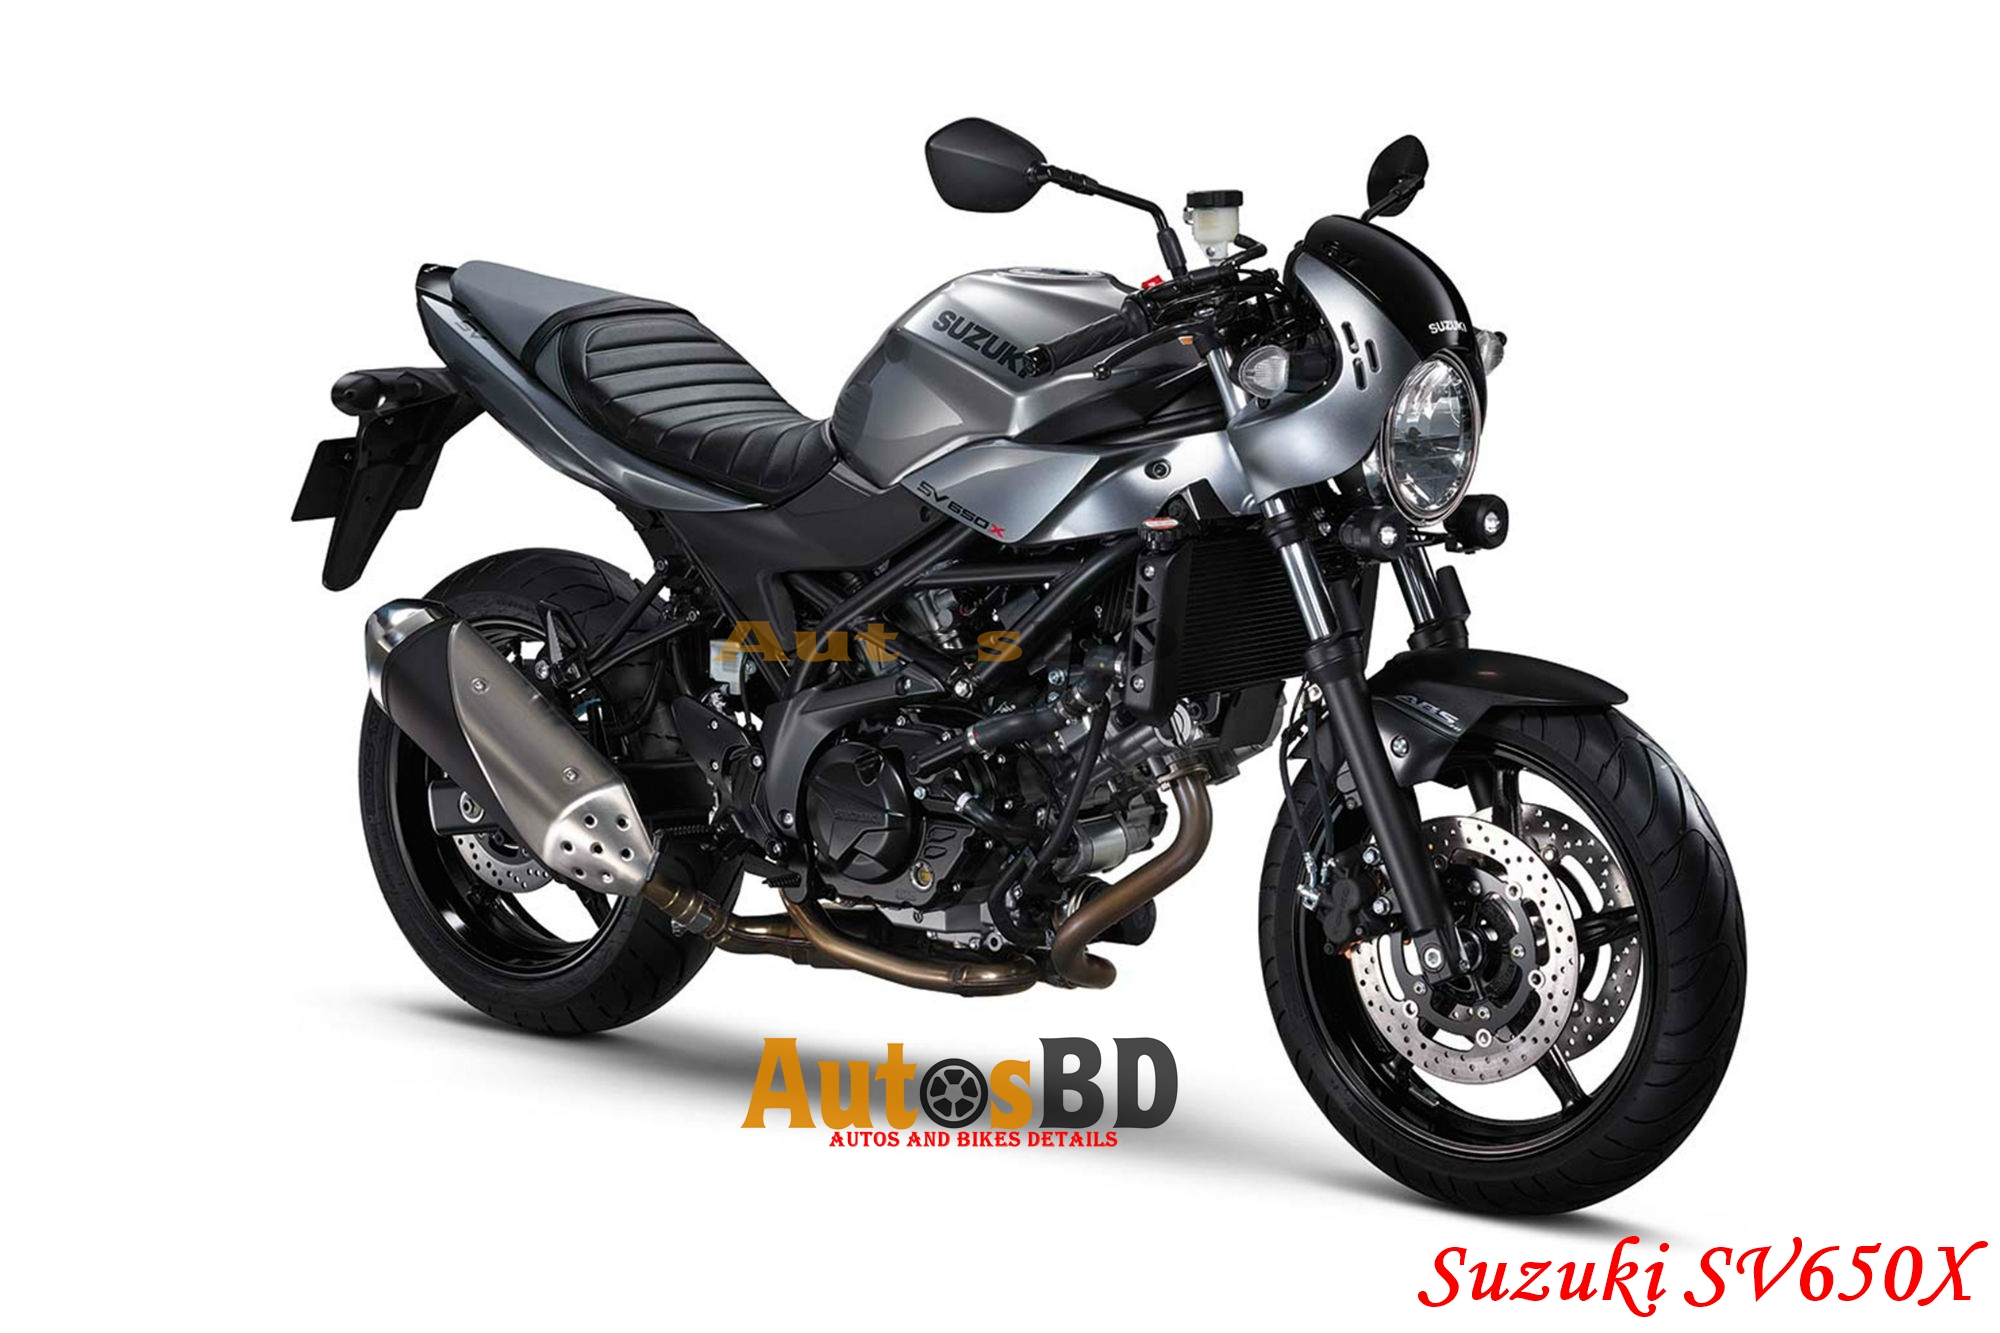 Suzuki SV650X Motorcycle Specification